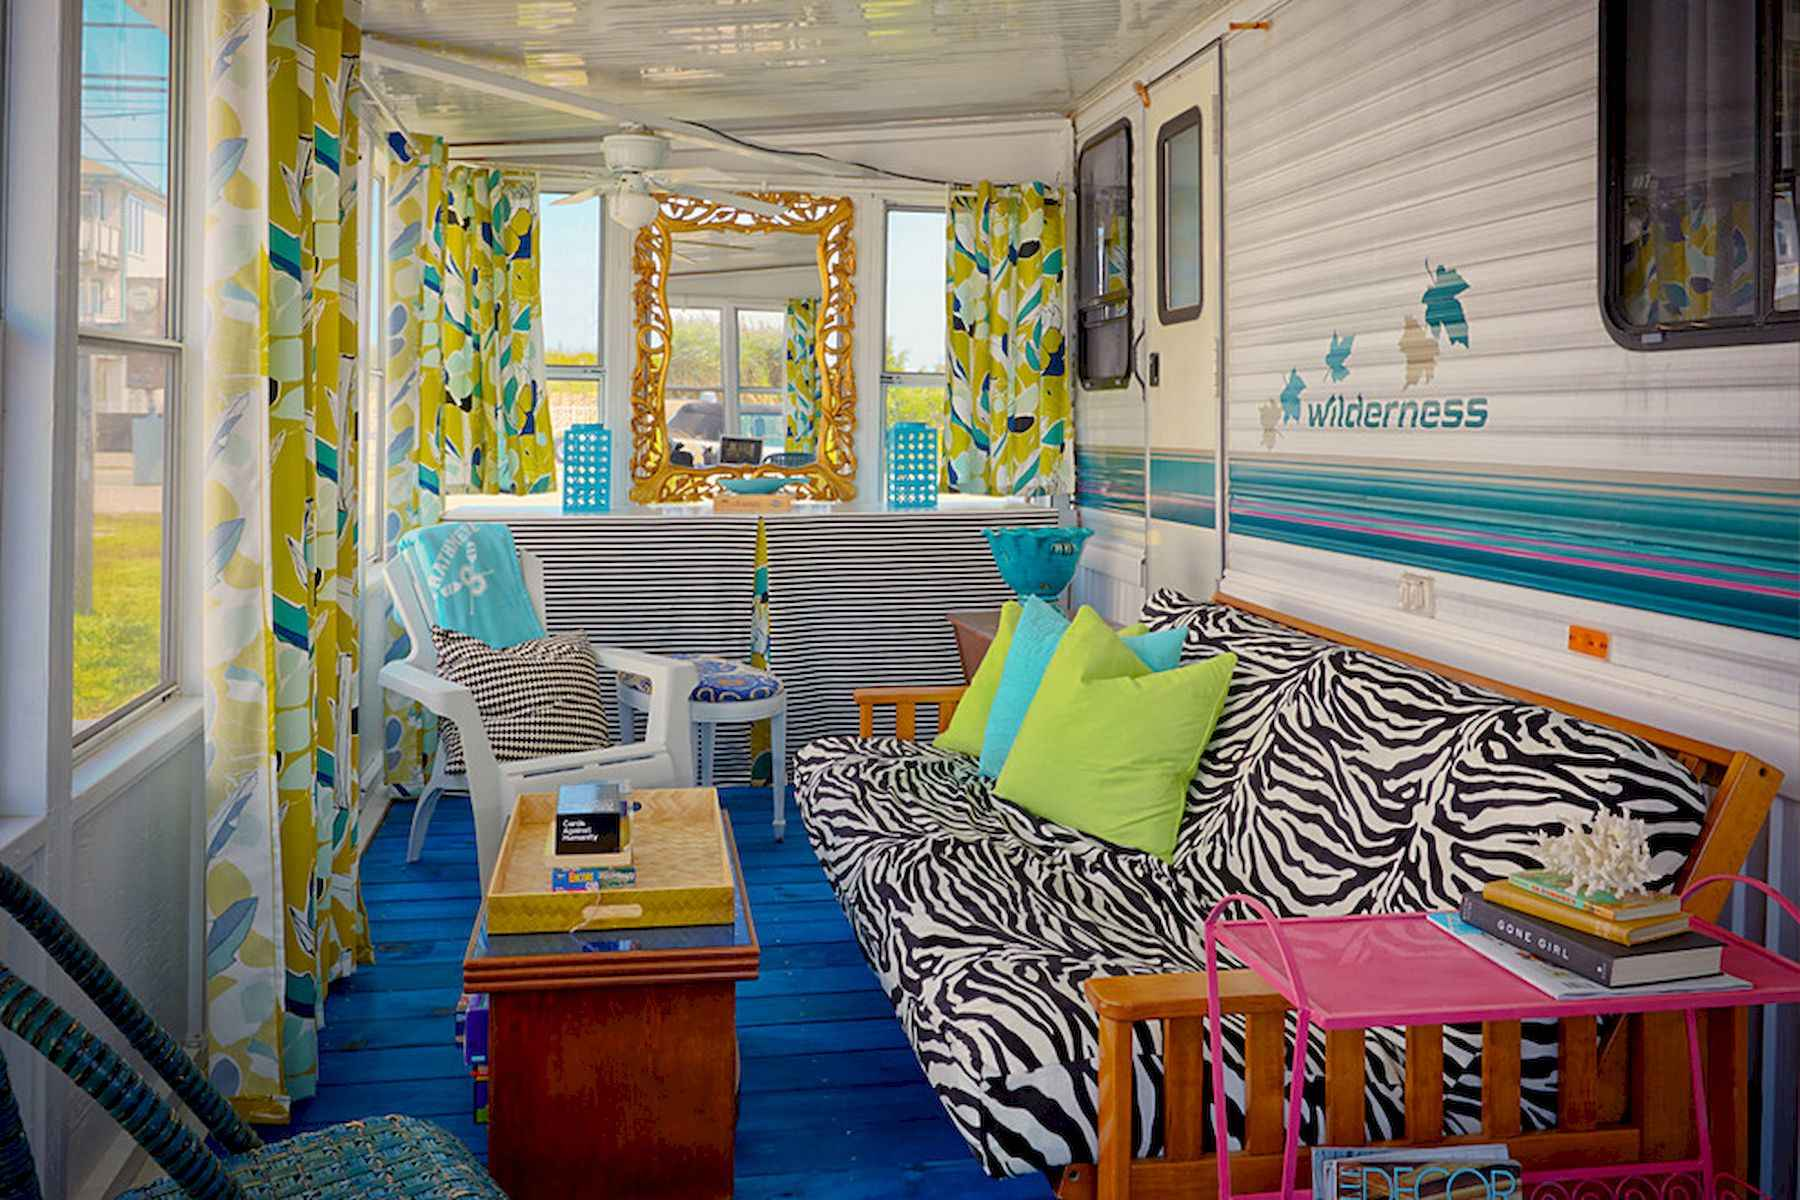 70 Stunning RV Living Camper Room Ideas Decorations Make Your Summer Awesome (70)